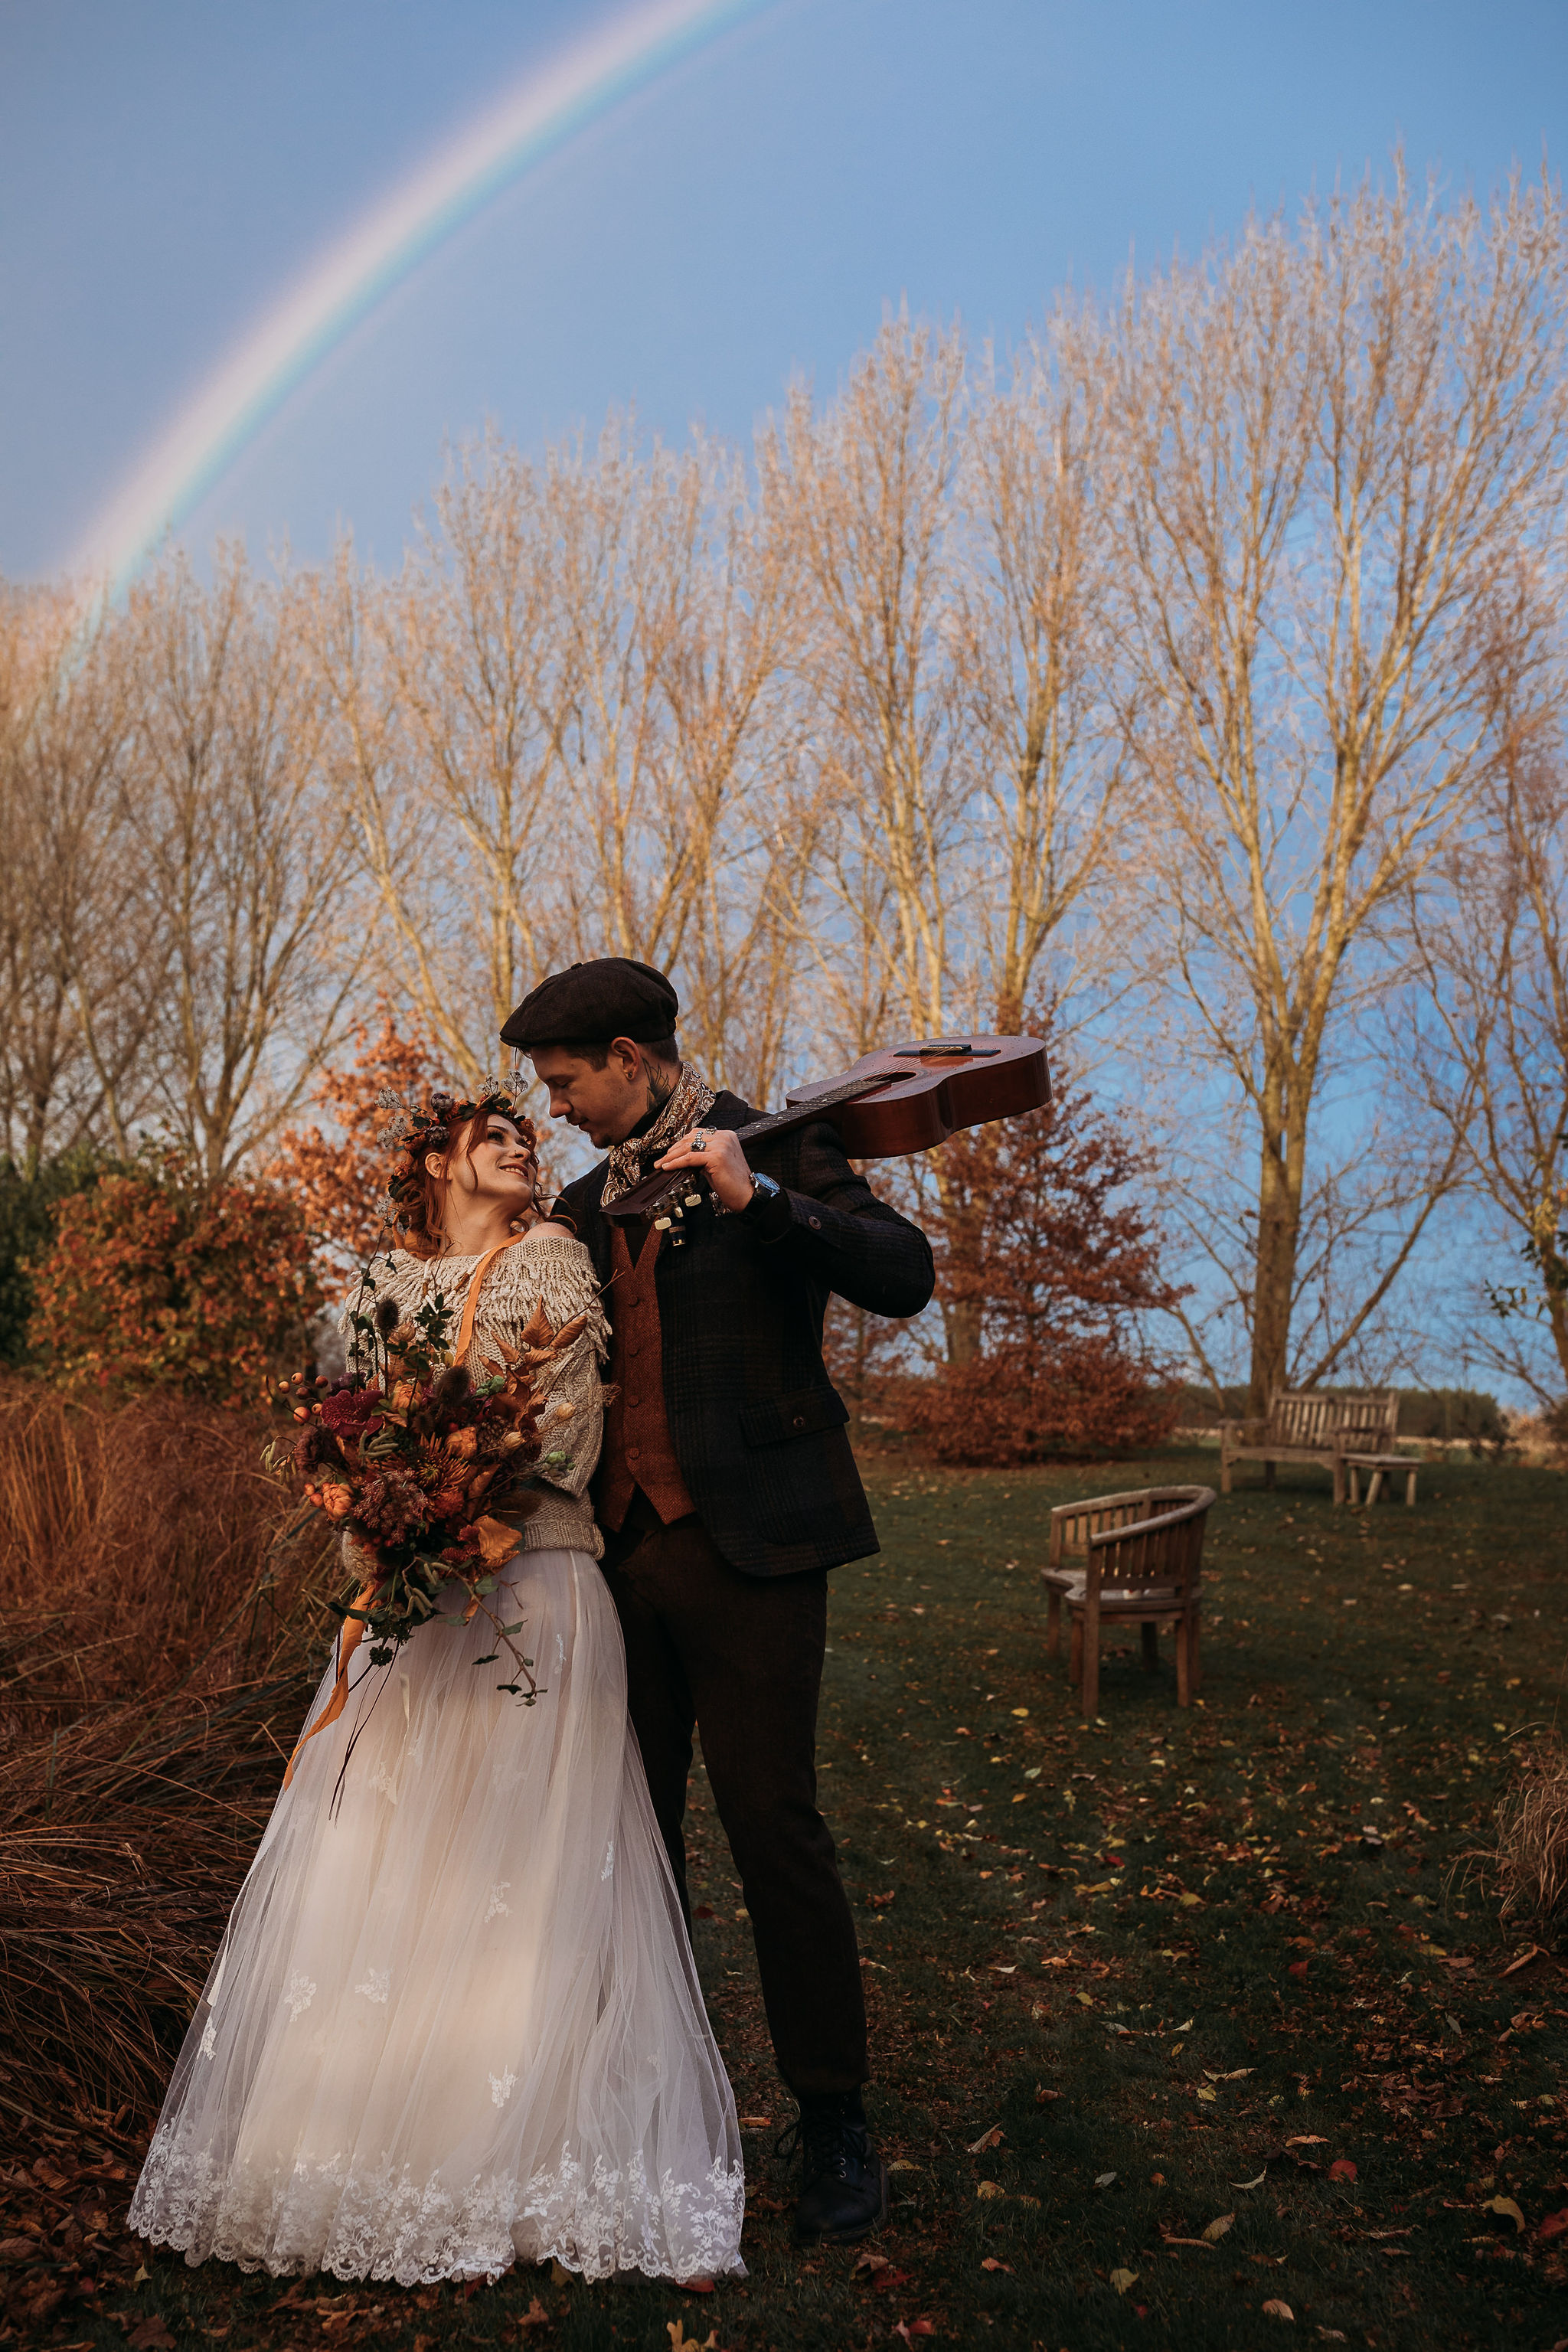 Bride and Groom under rainbow